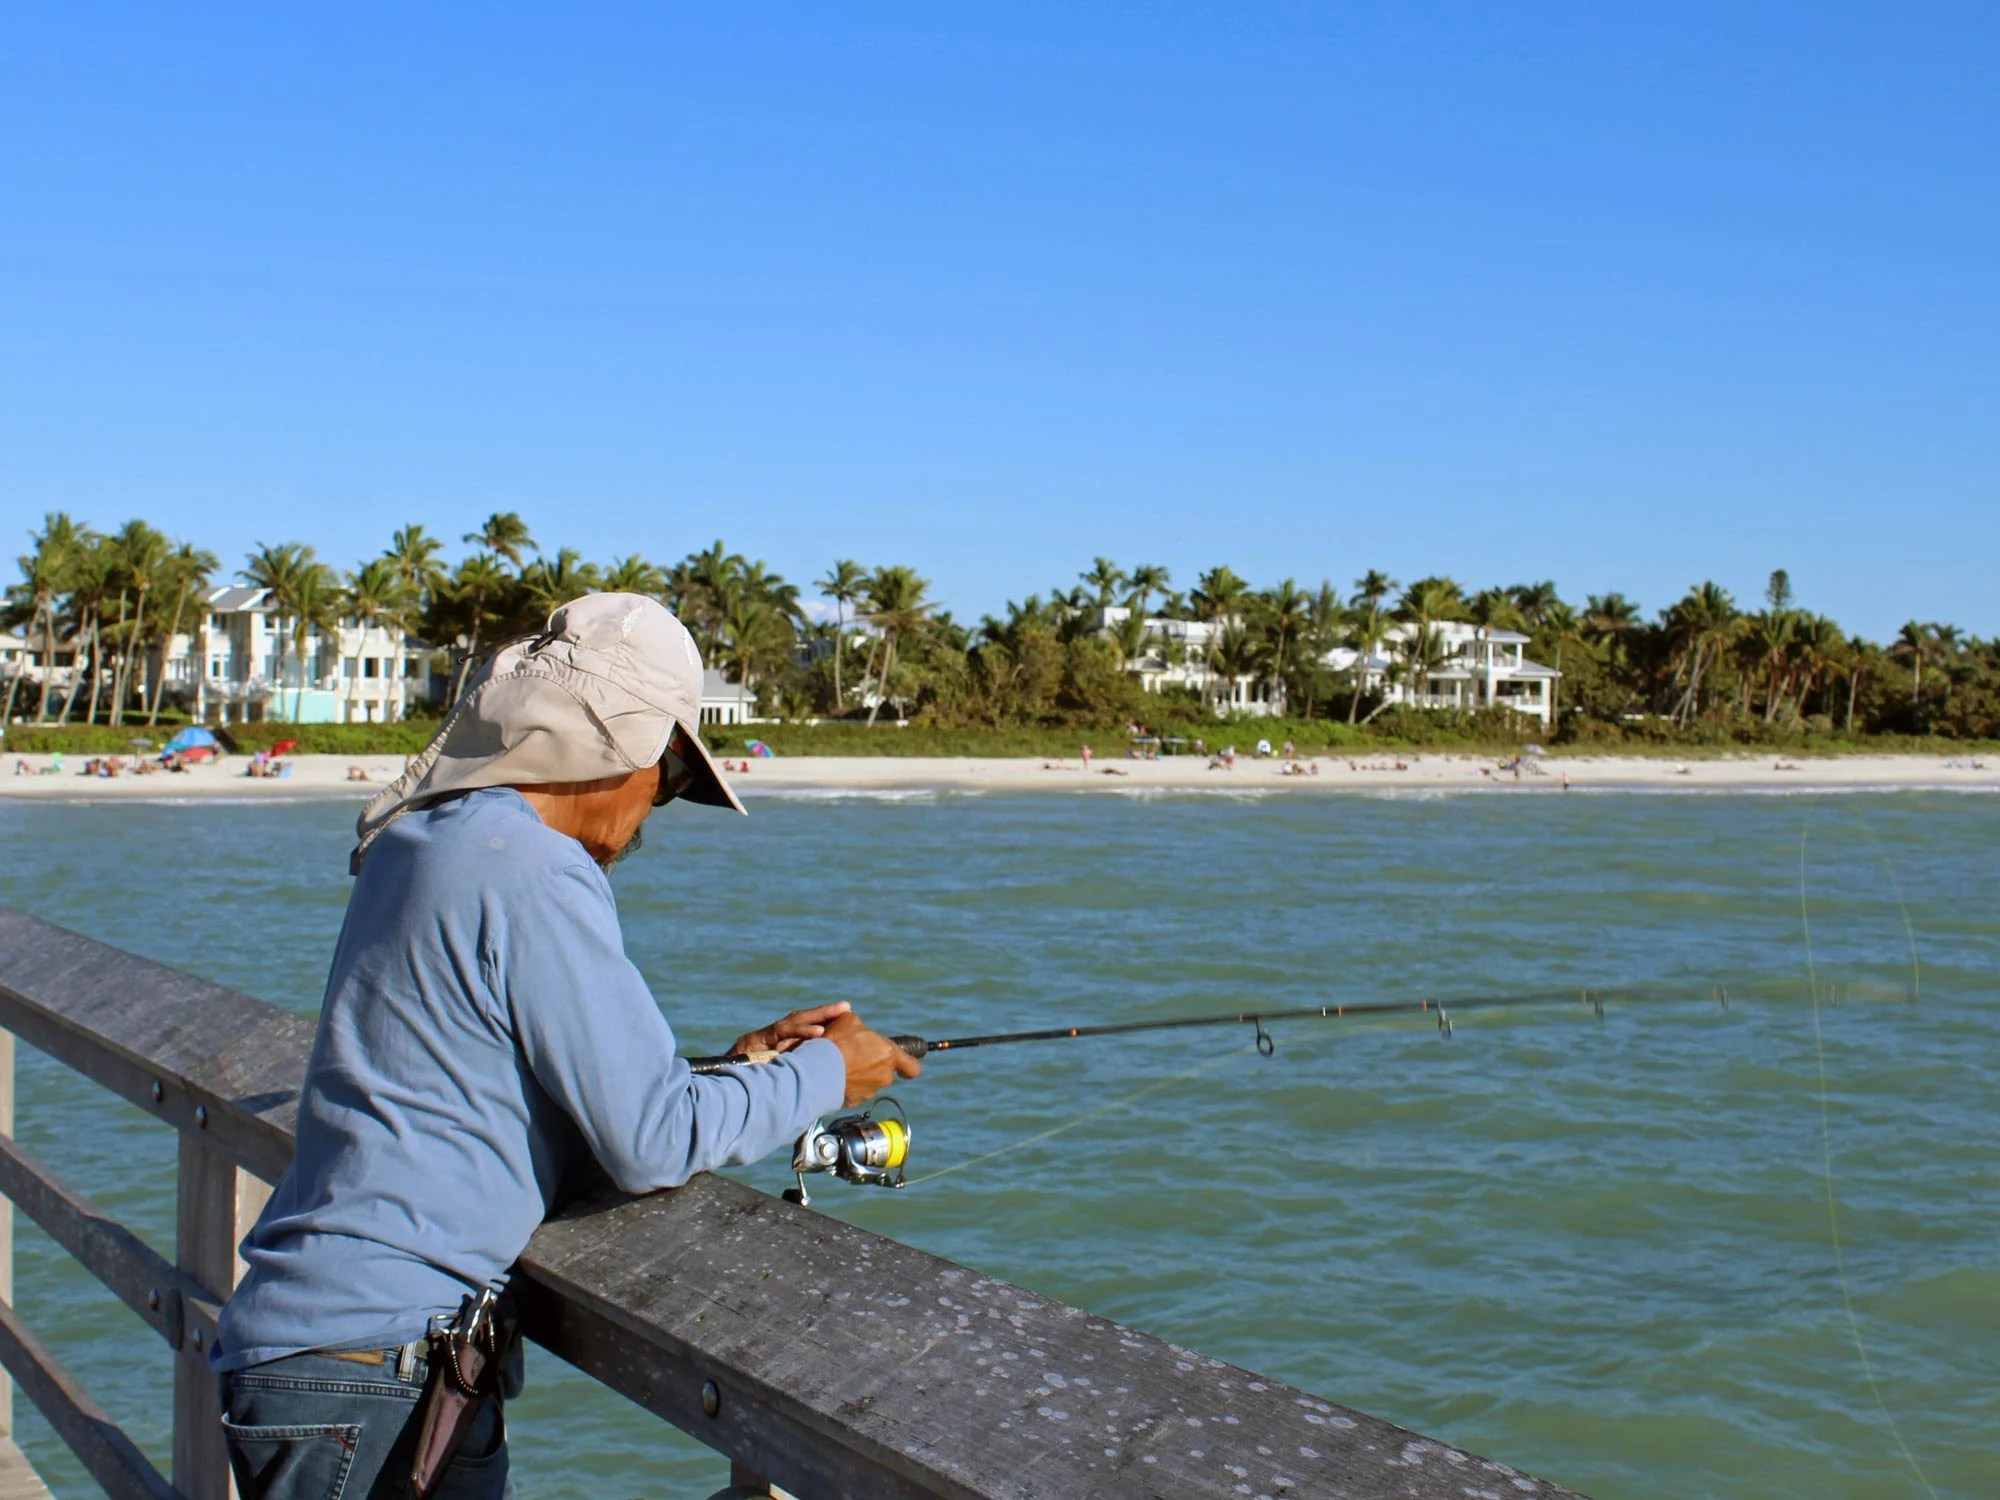 A man enjoying a relaxing day of fishing from a pier alone